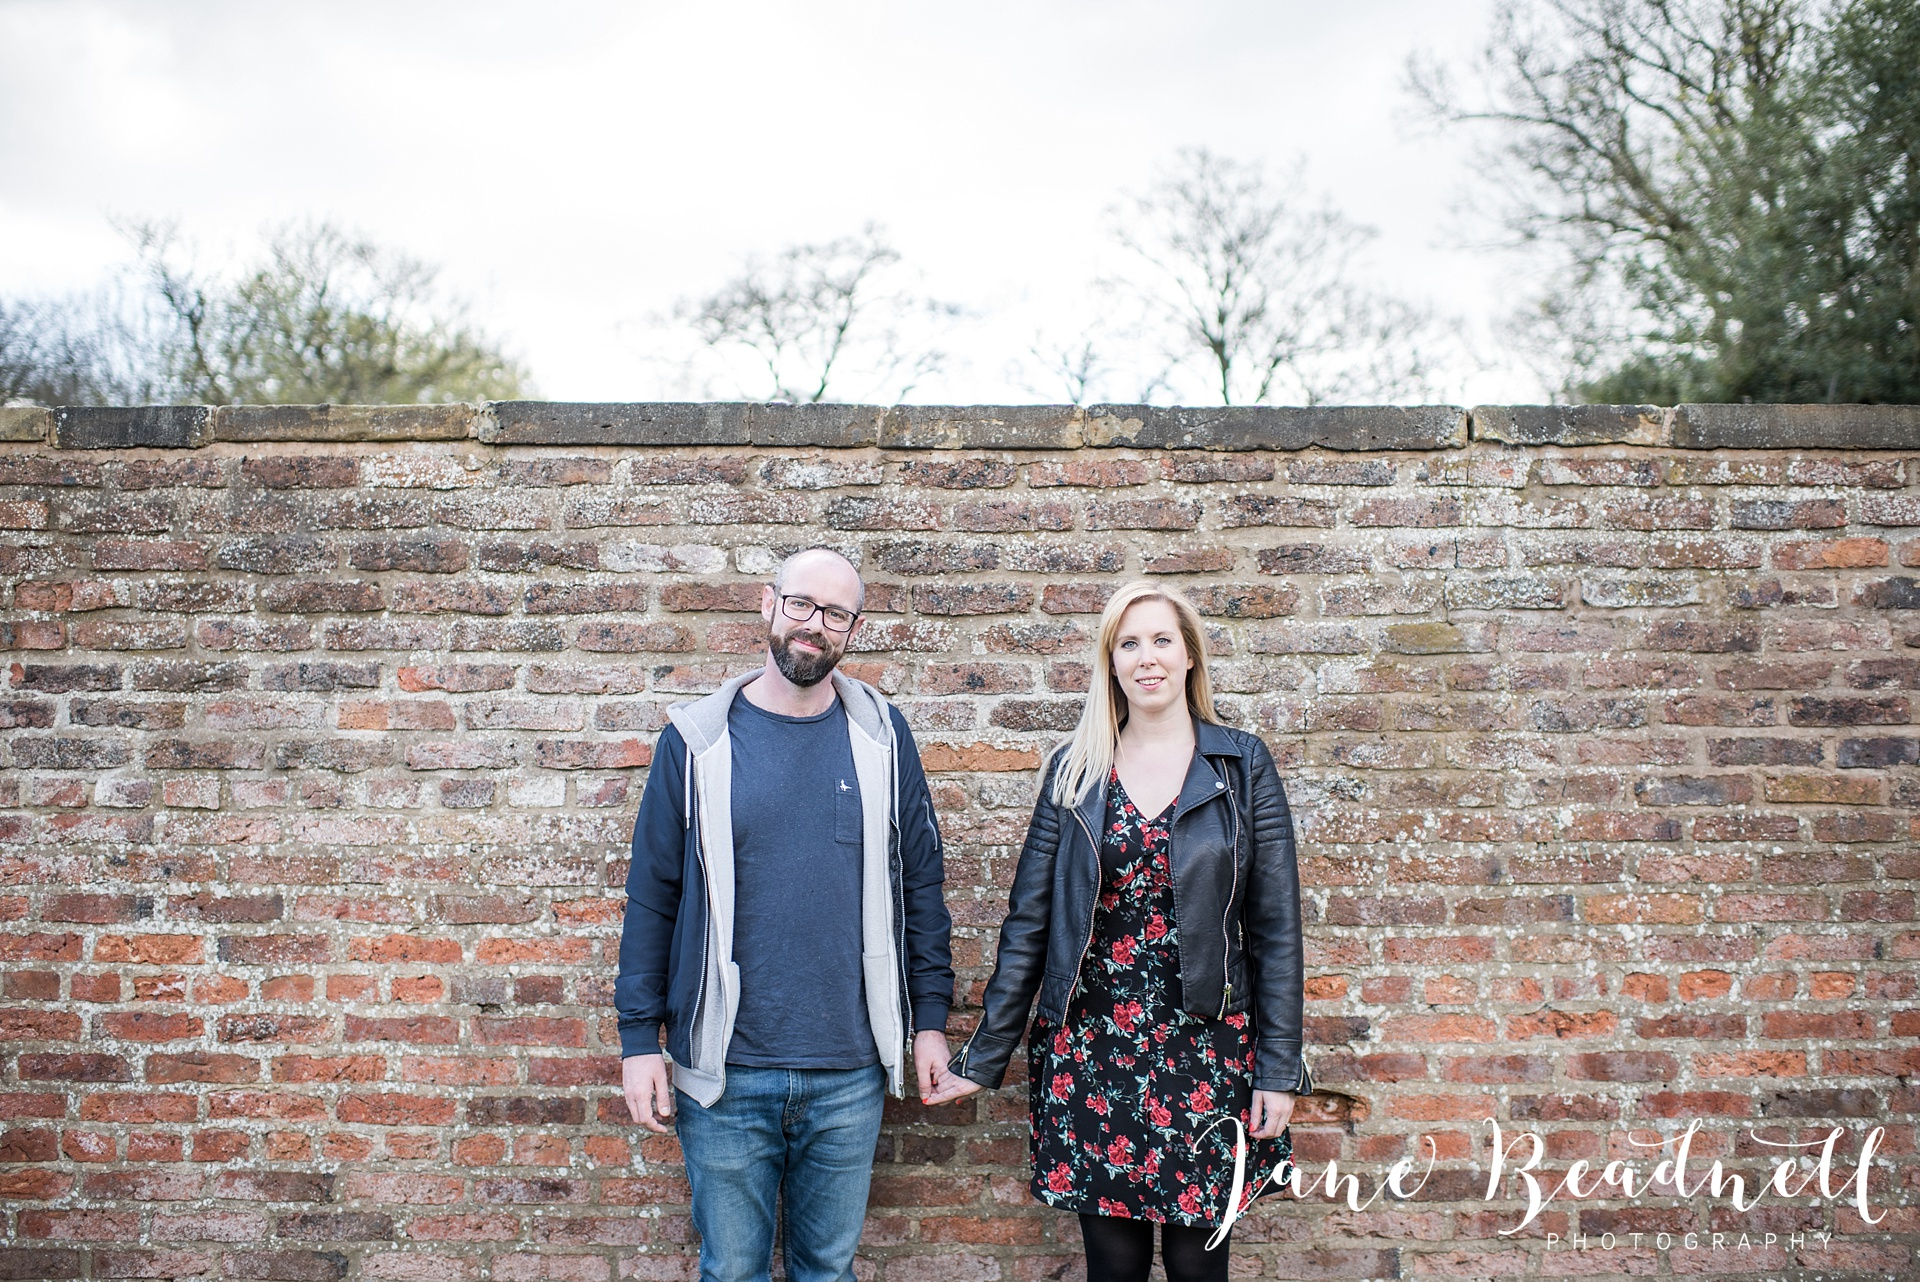 Temple Newsam engagement photography by Jane Beadnell Wedding Photography_0013